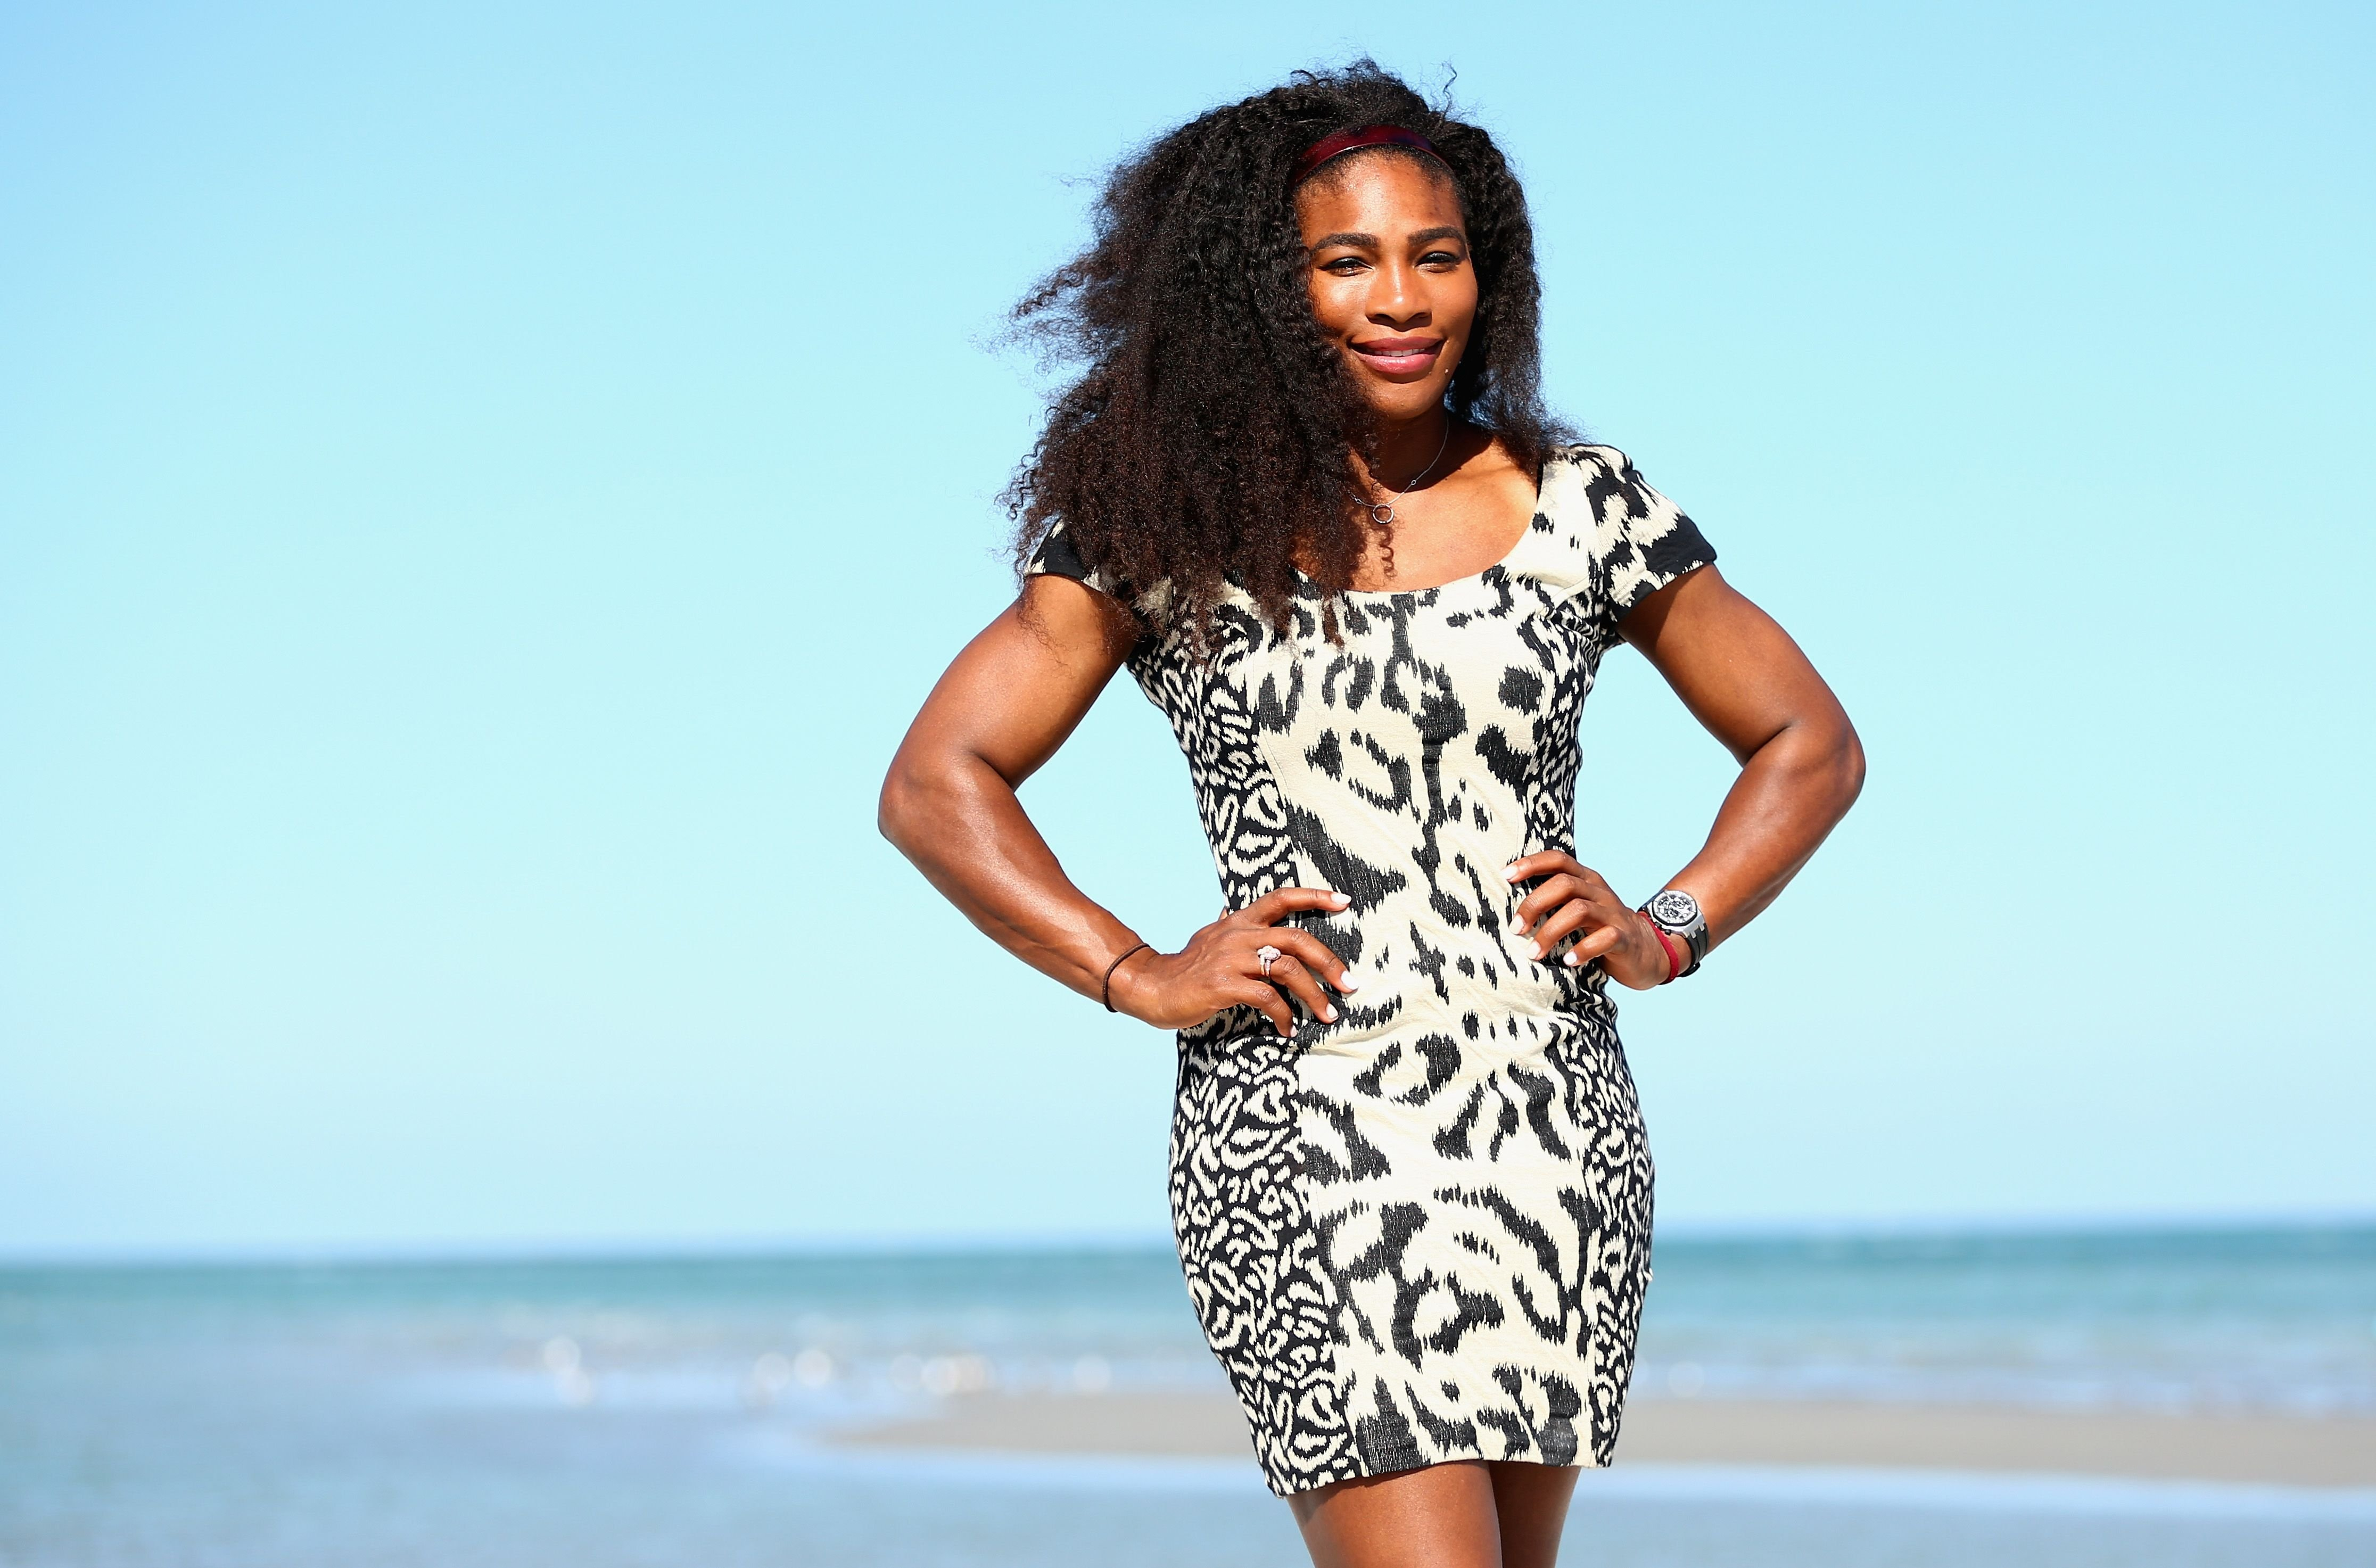 Serena Williams in Key Biscayne in Florida during the Miami Open Presented by Itau on April 4, 2015.   Source: Getty Images